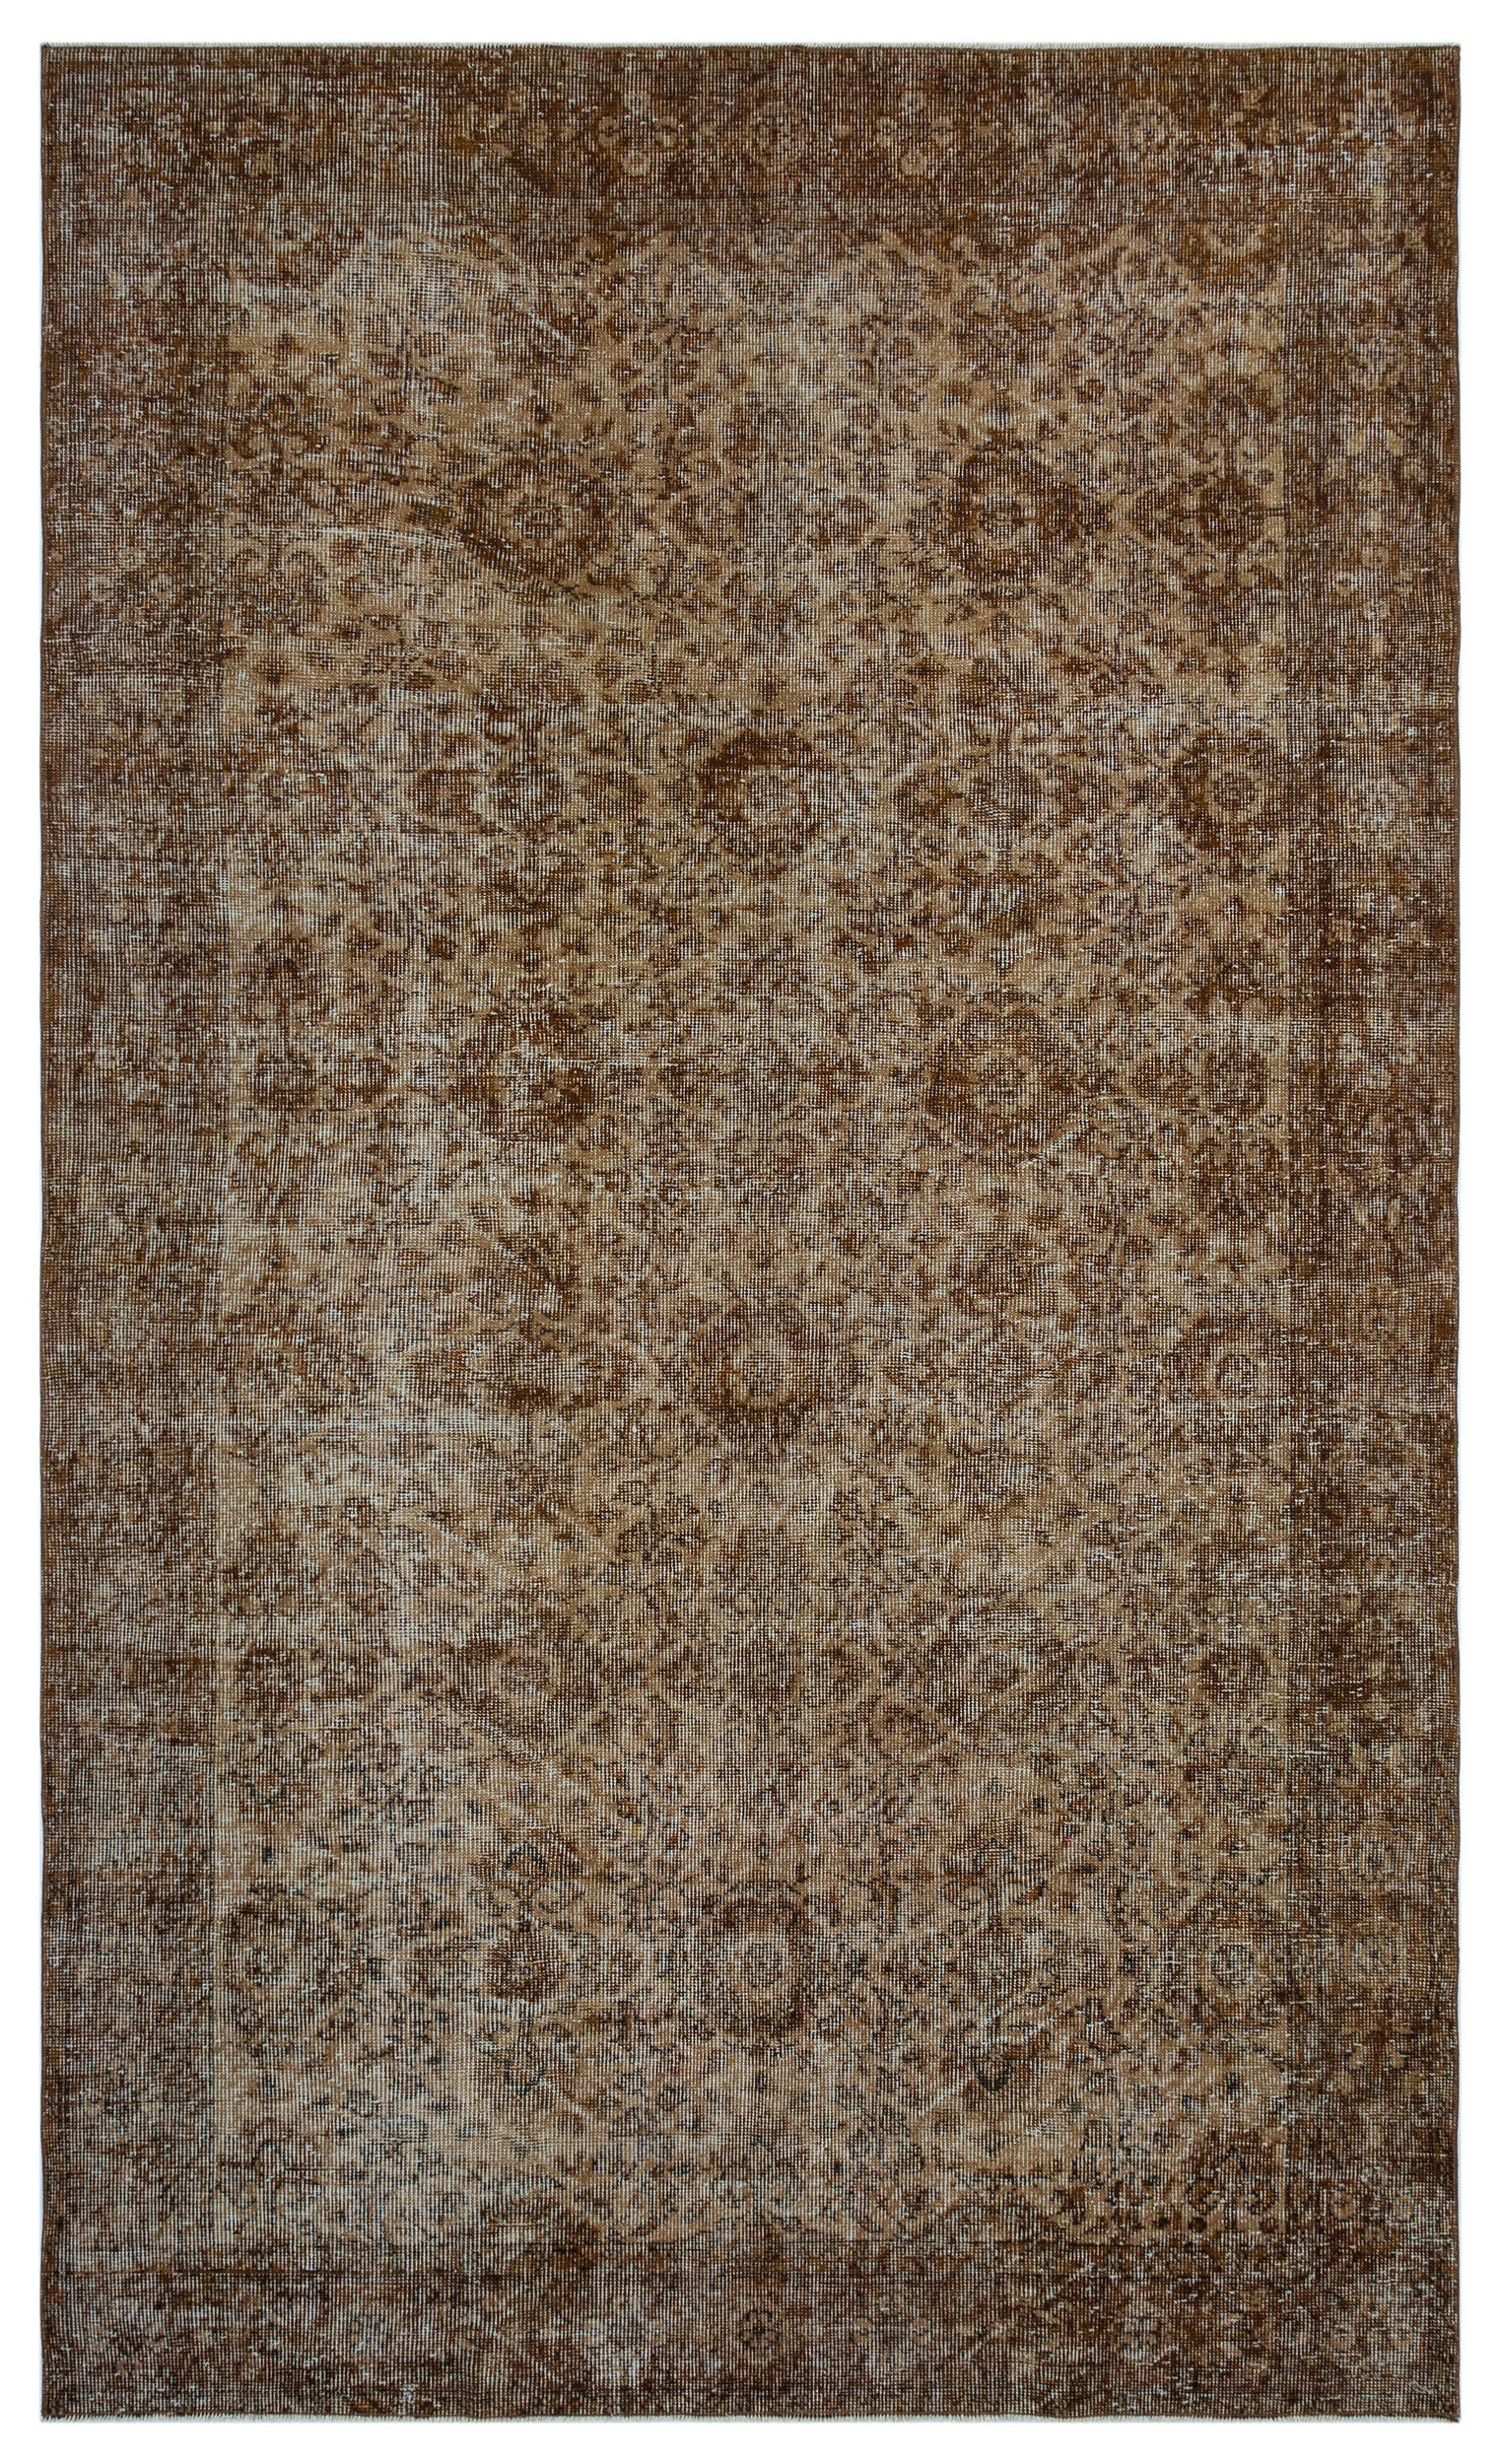 Brown Over Dyed Vintage Rug 5'7'' x 9'3'' ft 170 x 282 cm